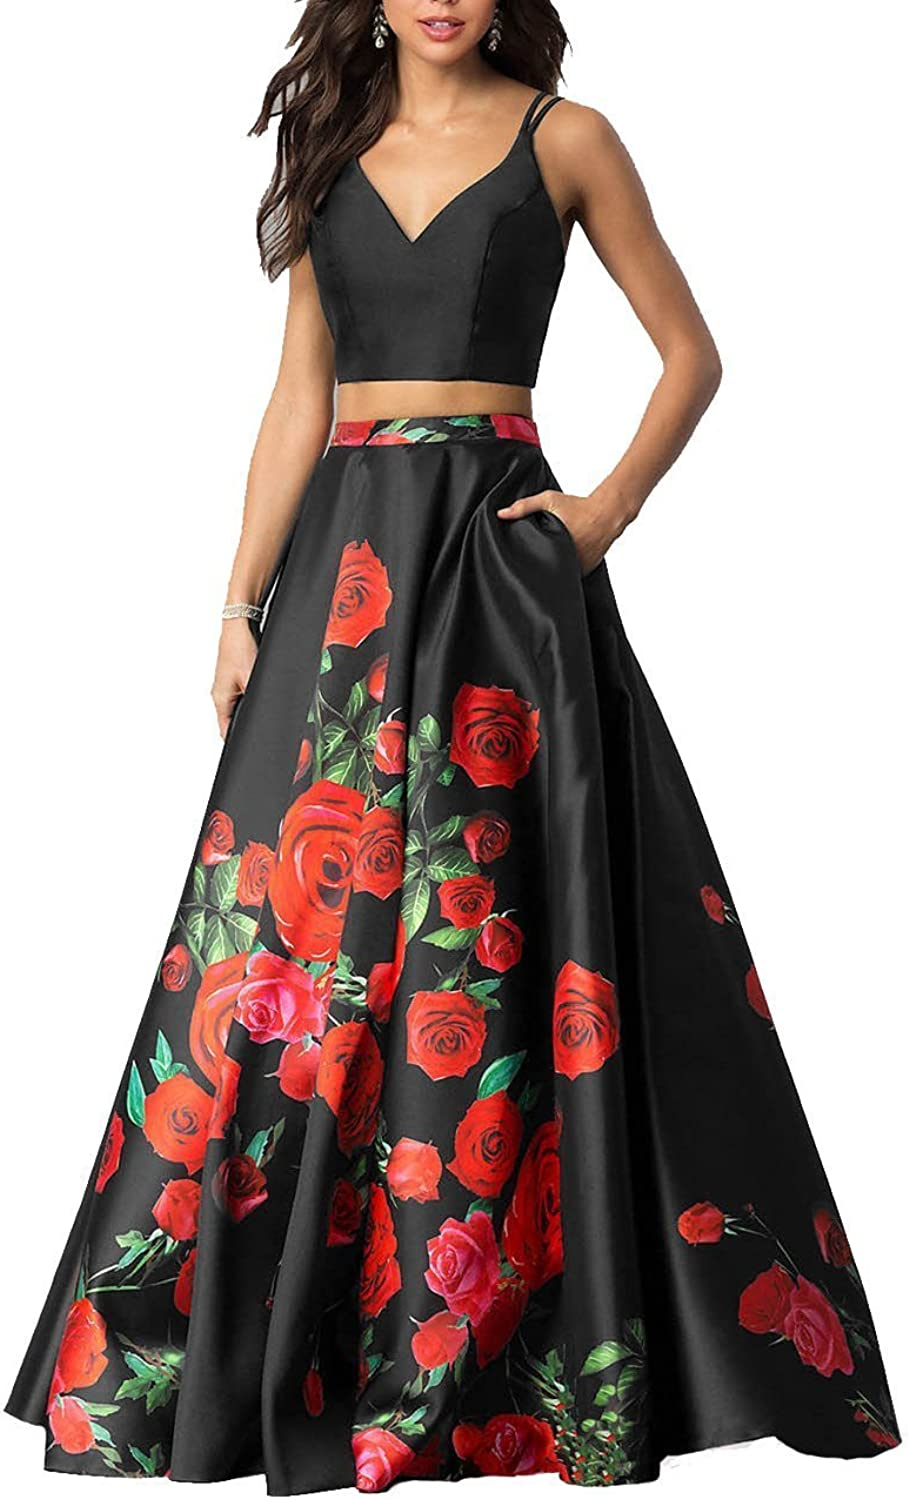 JoyVany Women's Floral Print Two Piece Prom Dress Long Formal Evening Gowns JVLF004